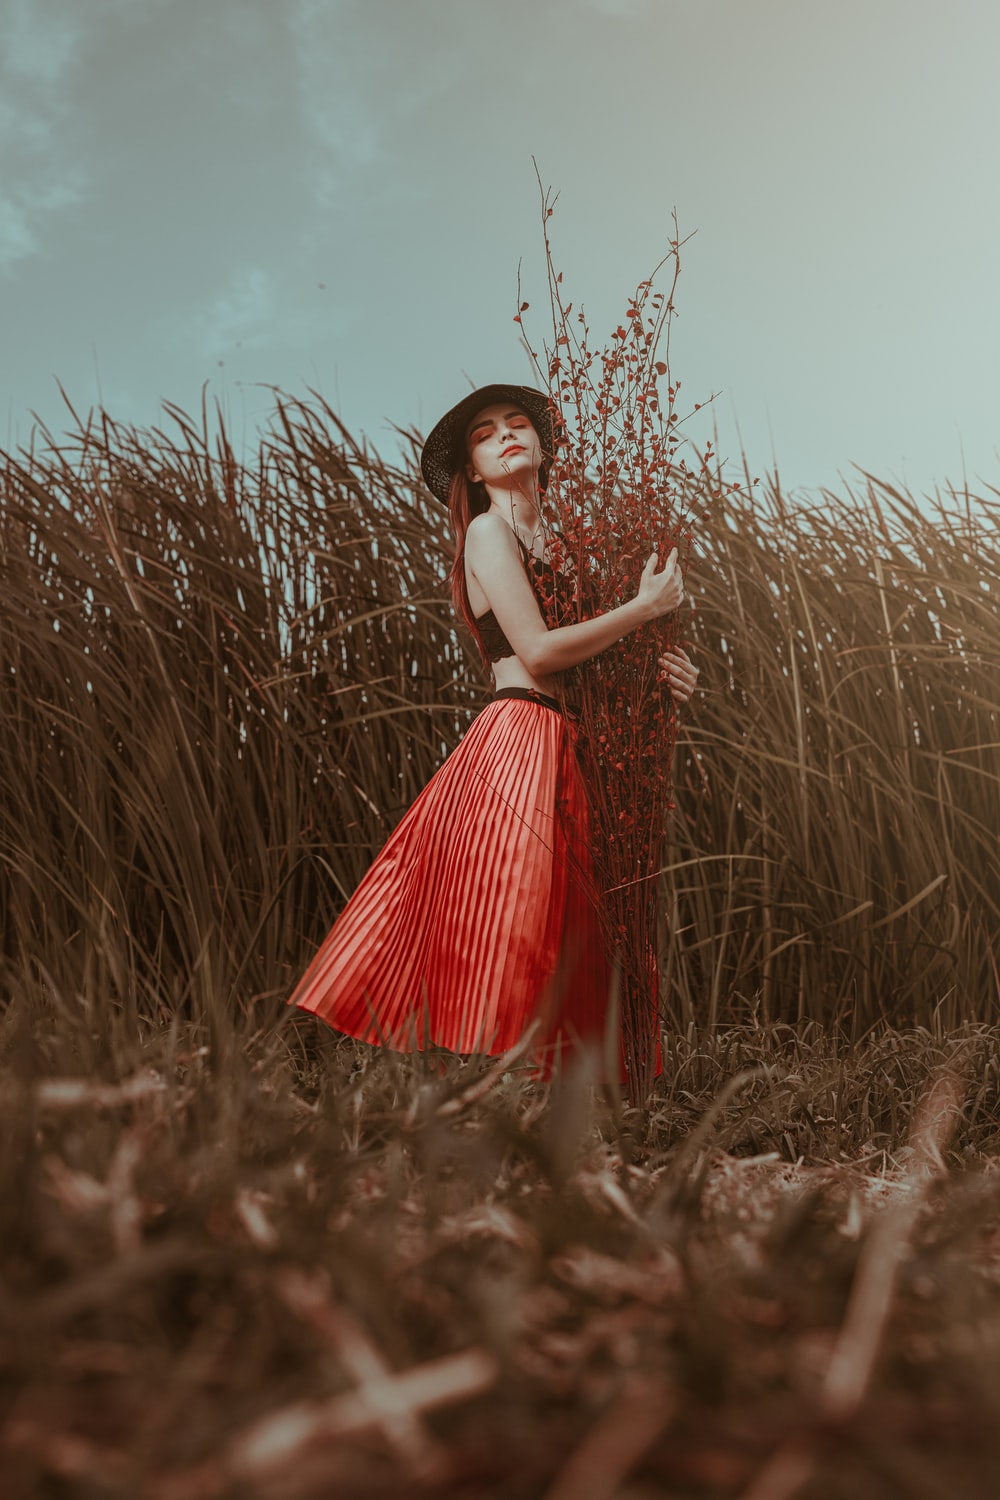 woman in red and white dress standing on brown grass field during daytime